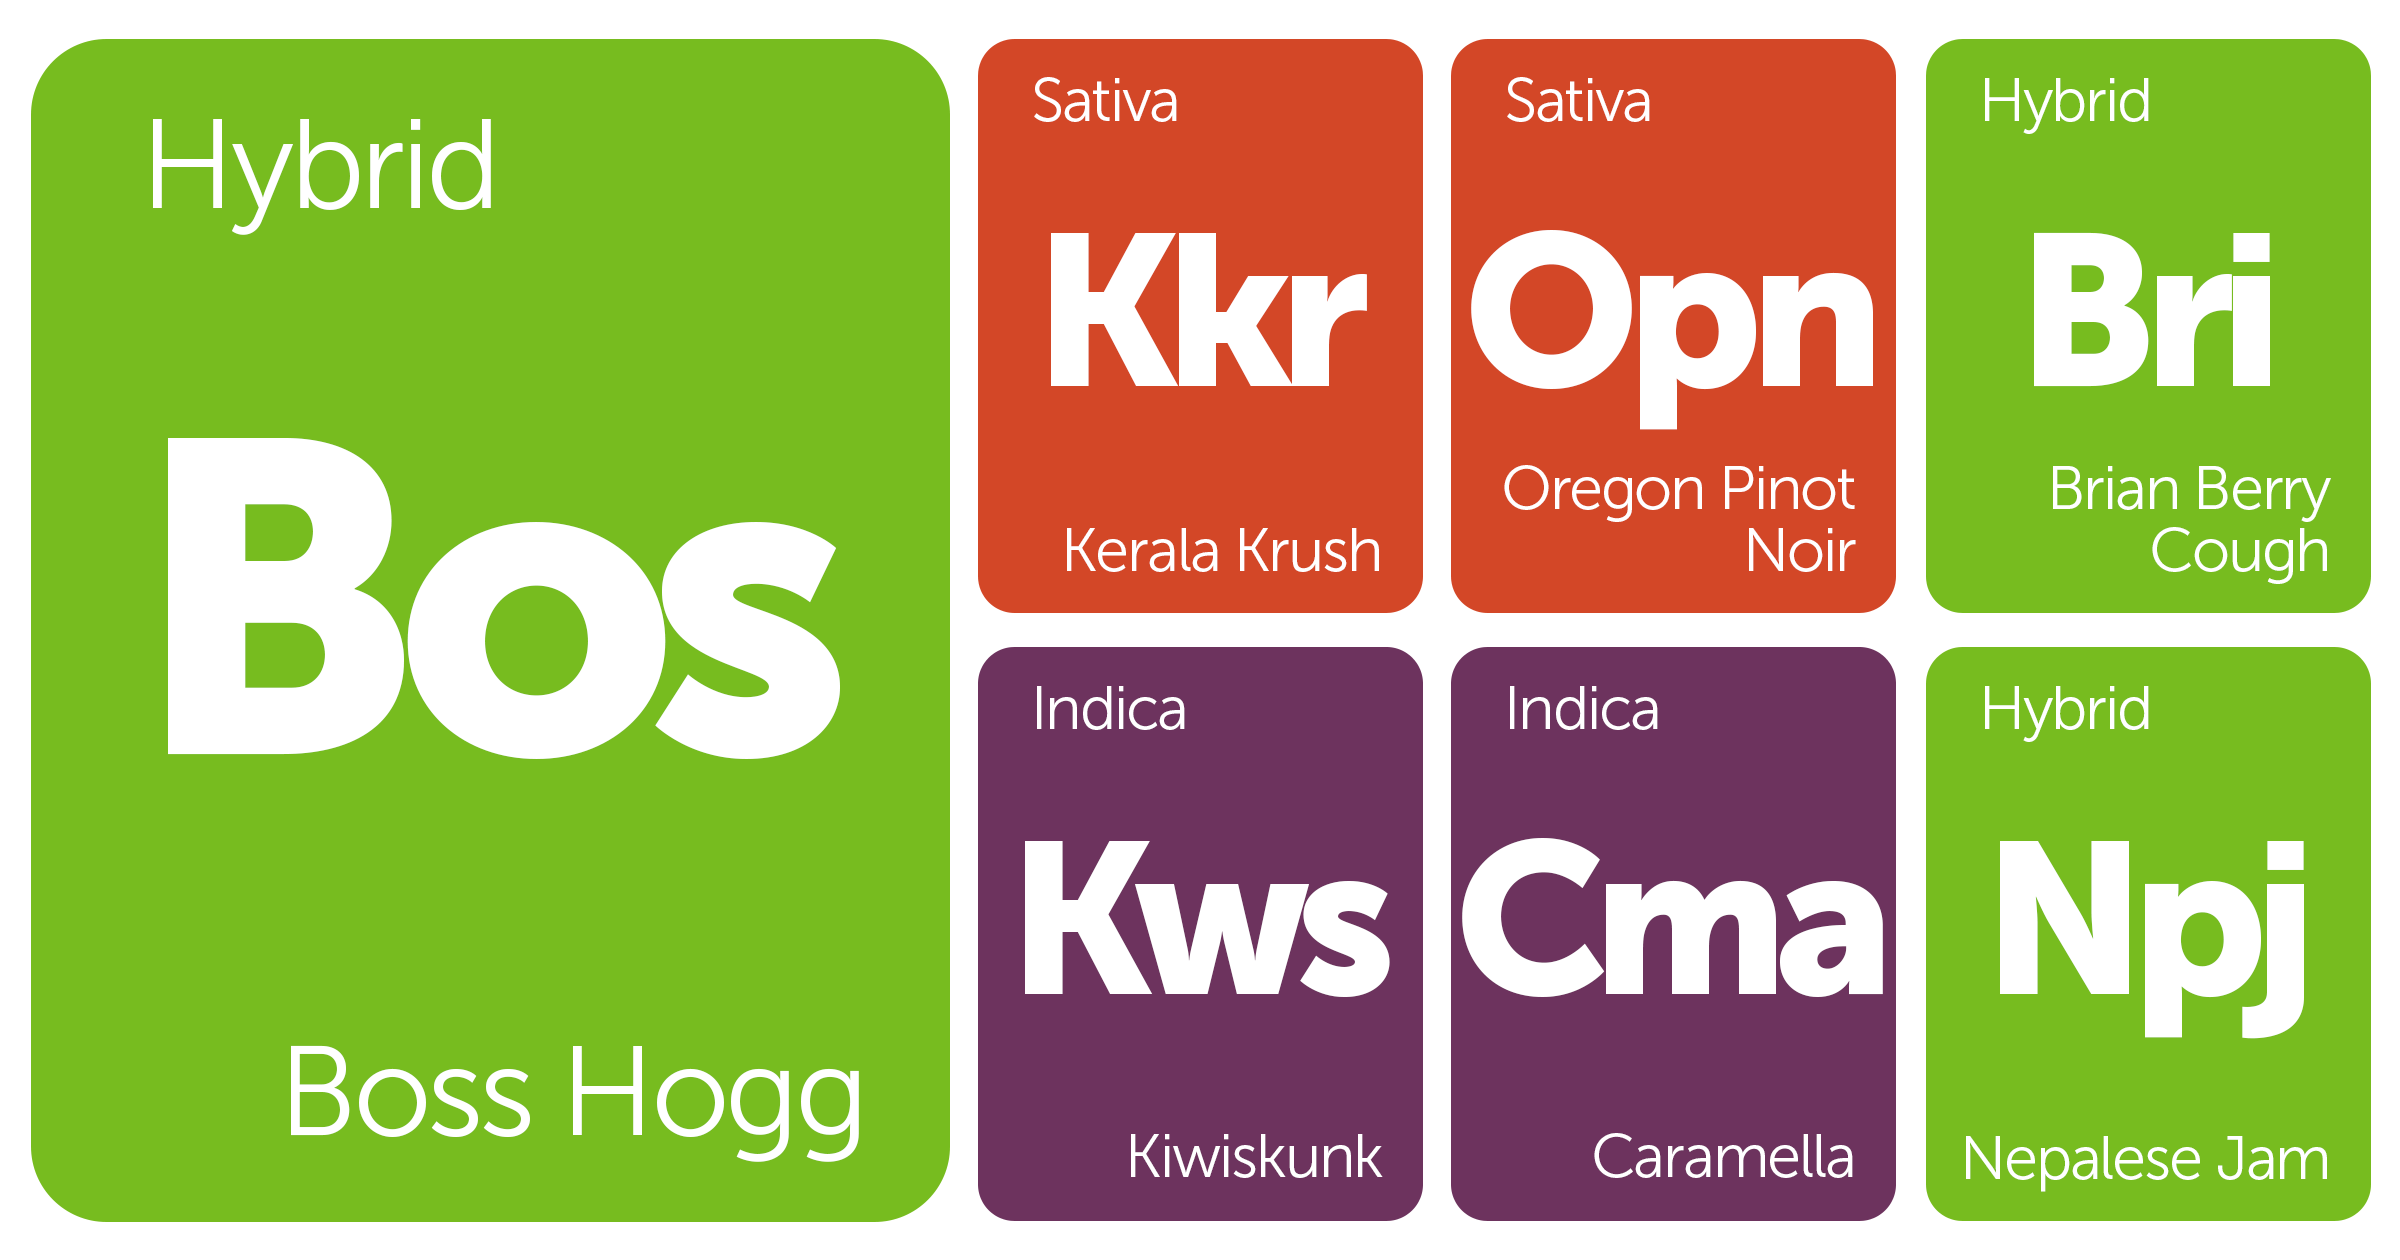 New Strains Alert: Boss Hogg, Brian Berry Cough, Kerala Krush, Kiwiskunk, and More